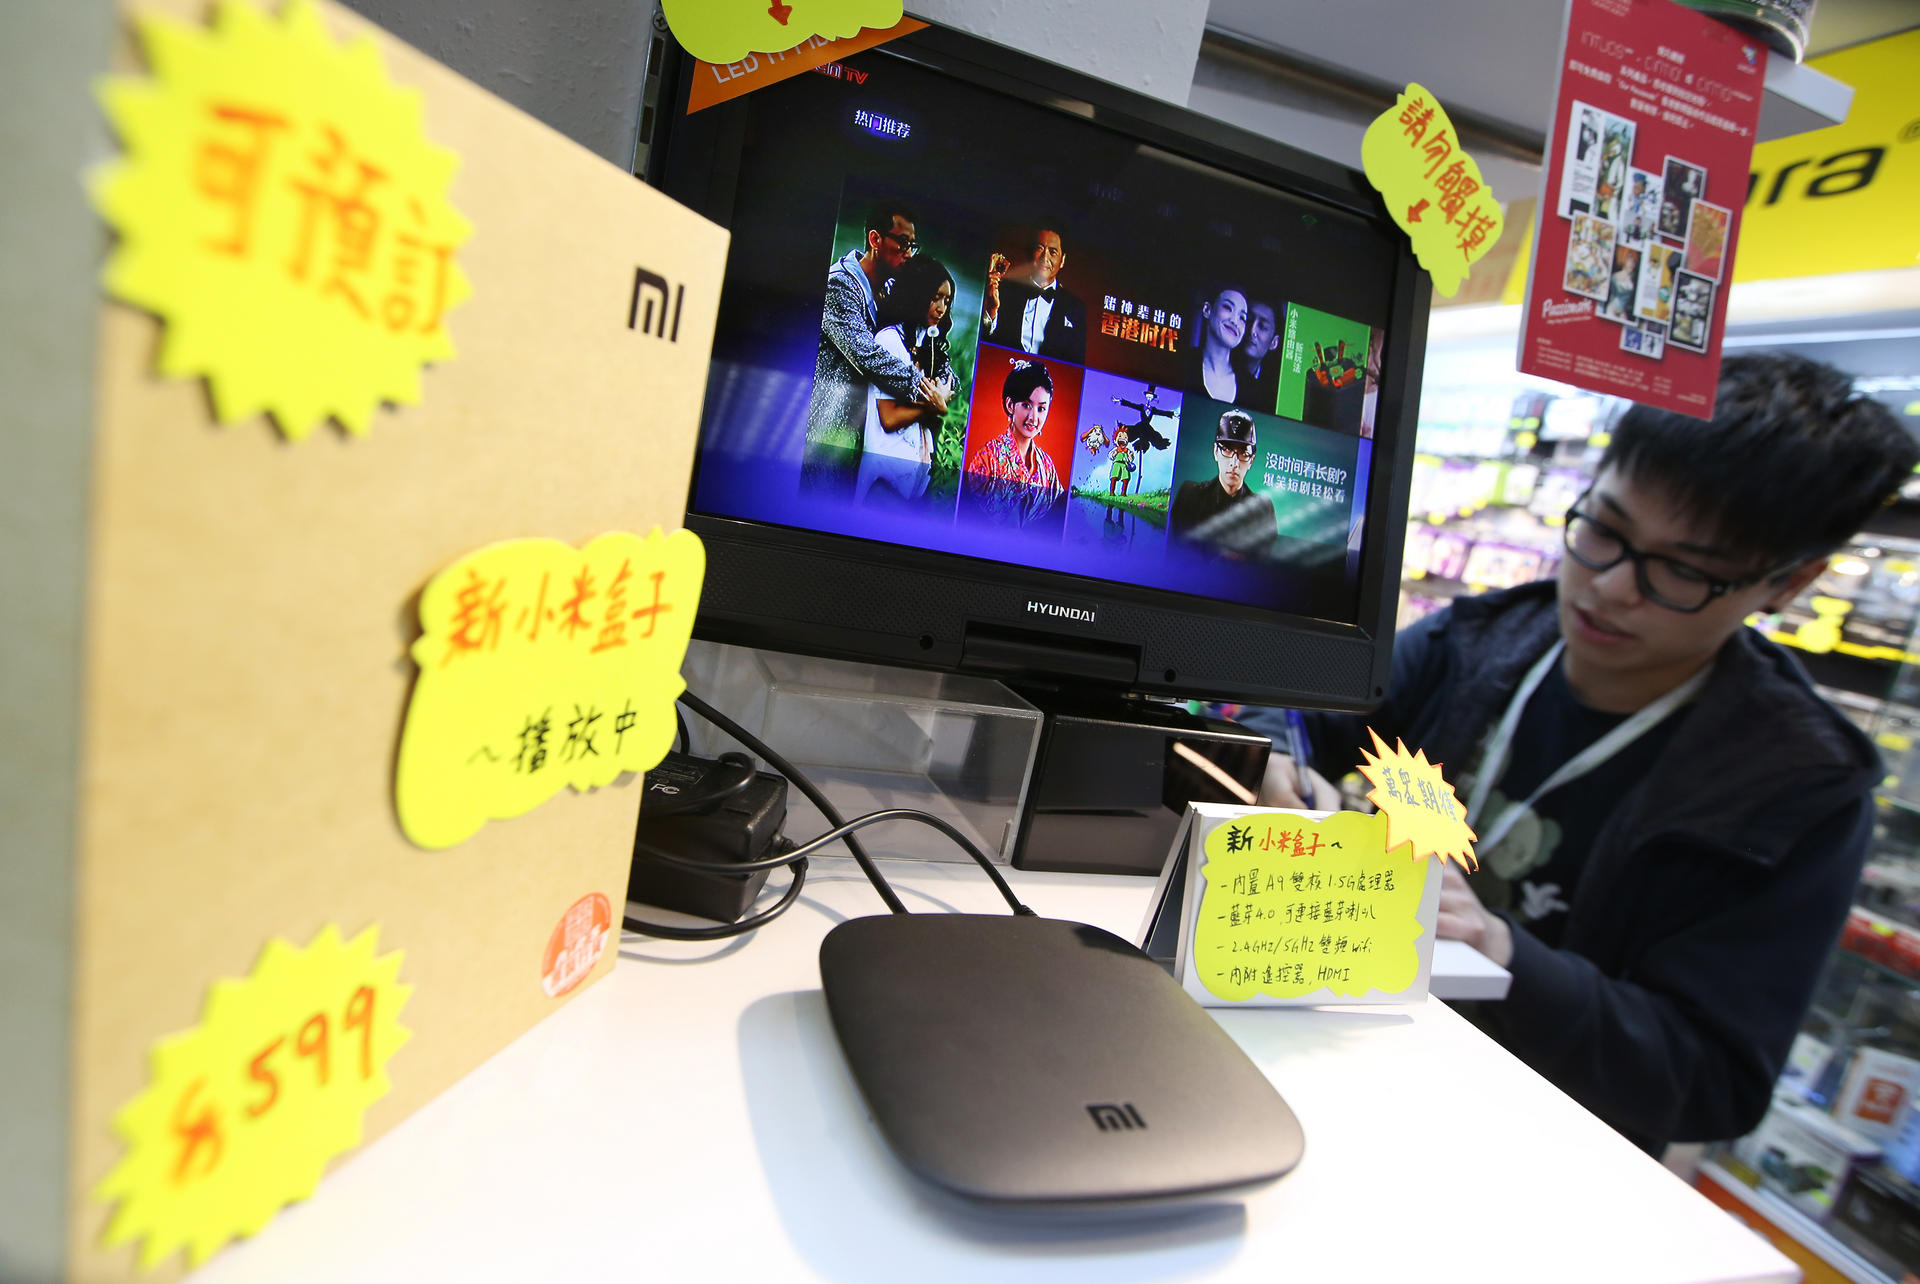 Chinese TV boxes like Xiaomi offering Hongkongers online